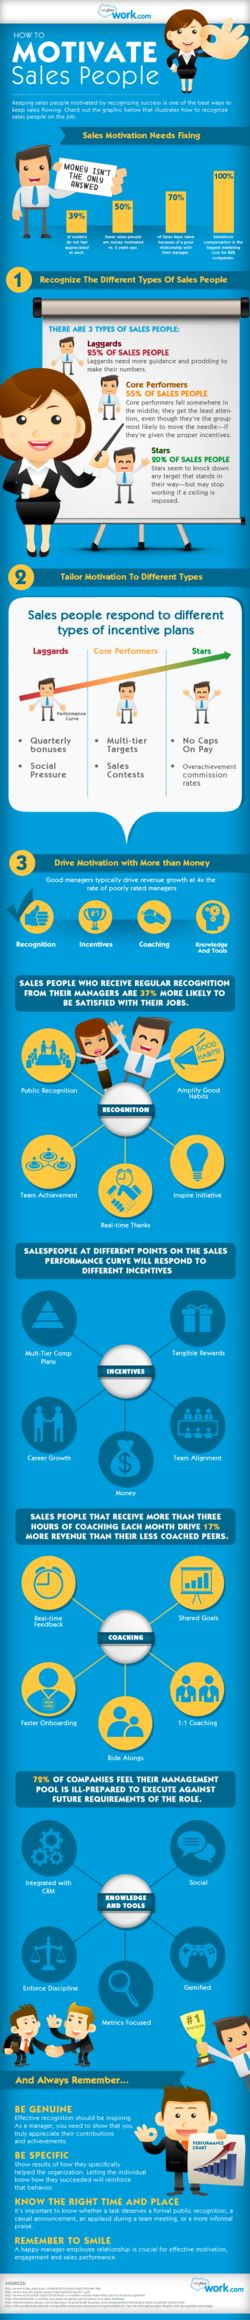 How to Motivate Sales People  #salesforce #cloud